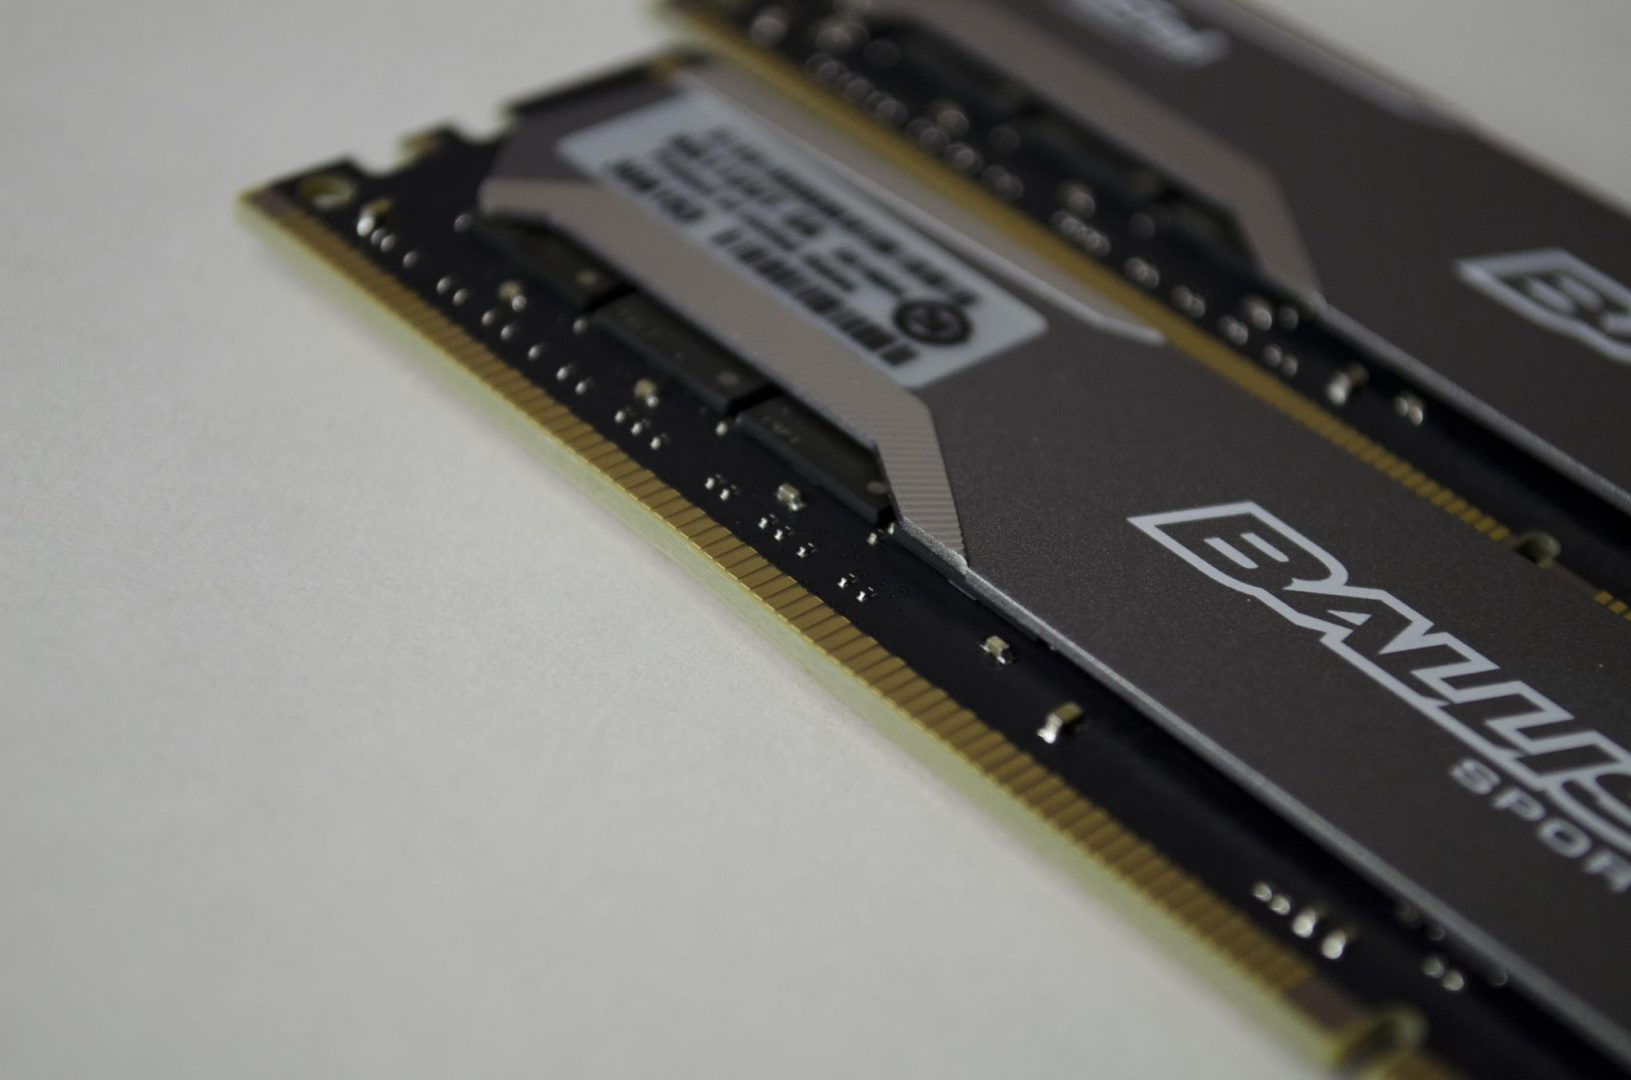 crucial ballistix sport 16gb ddr4 2400mhz reviews_2